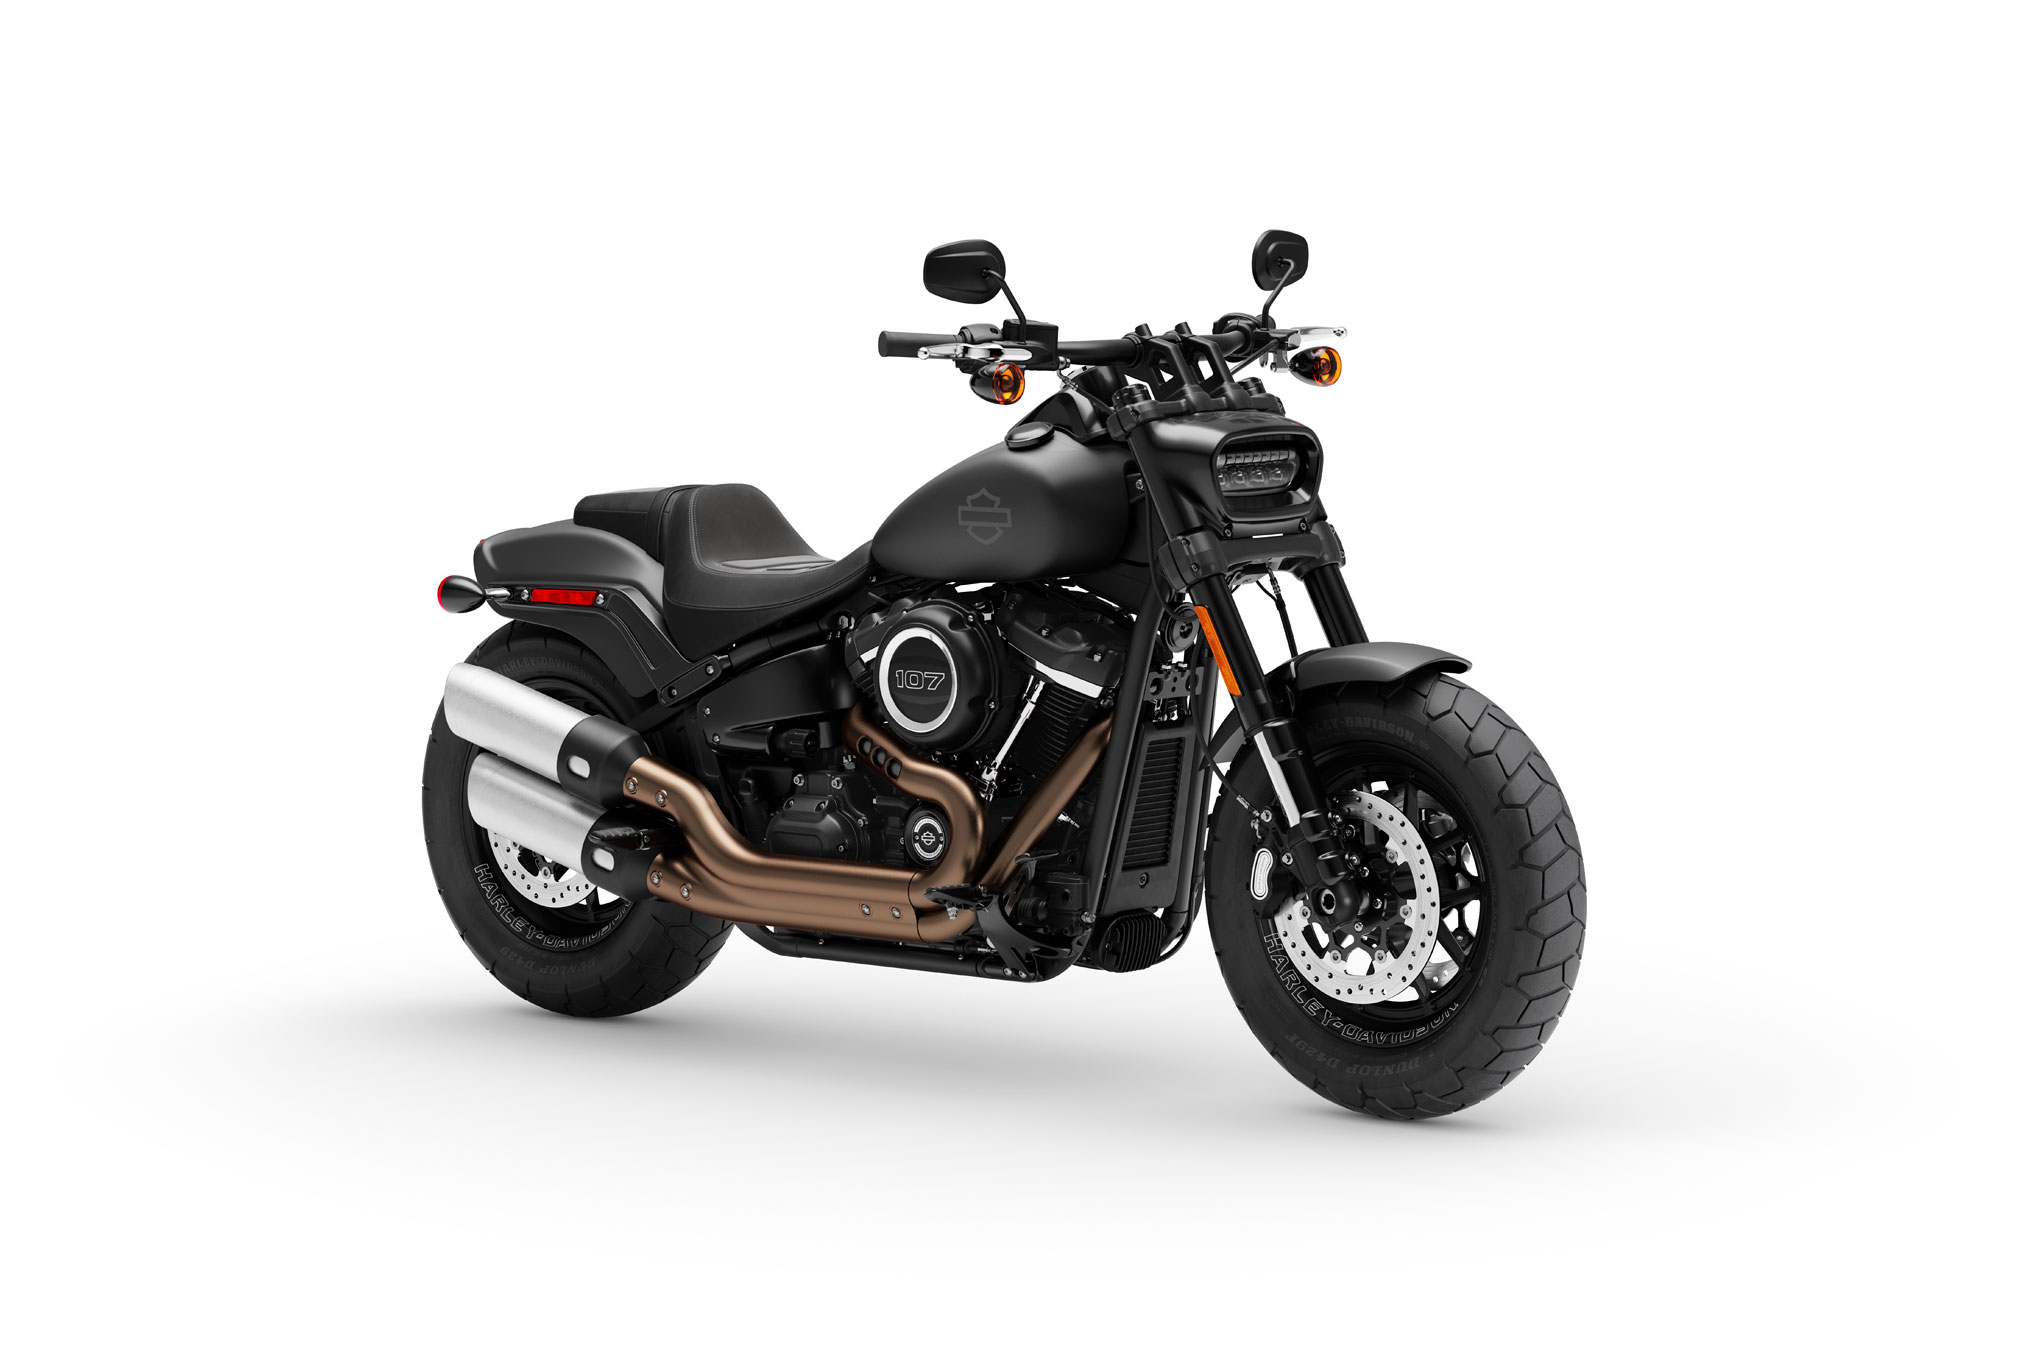 2019 harley davidson fat bob guide total motorcycle. Black Bedroom Furniture Sets. Home Design Ideas